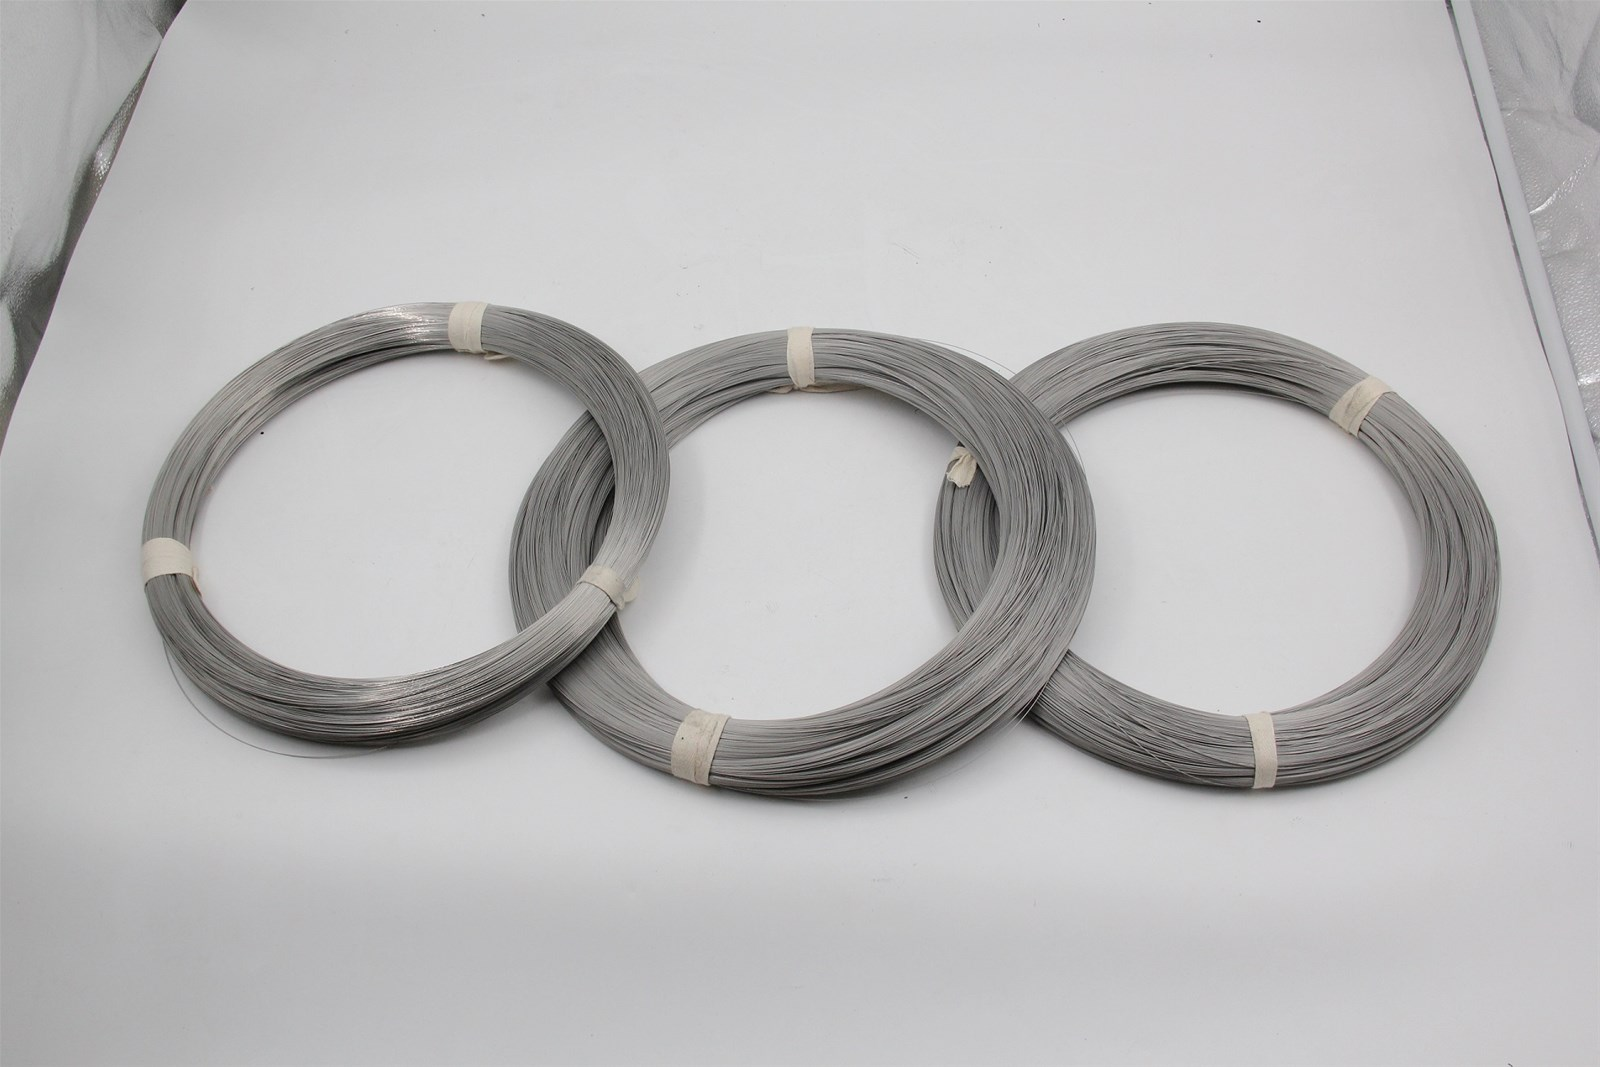 stainless steel wire for springs